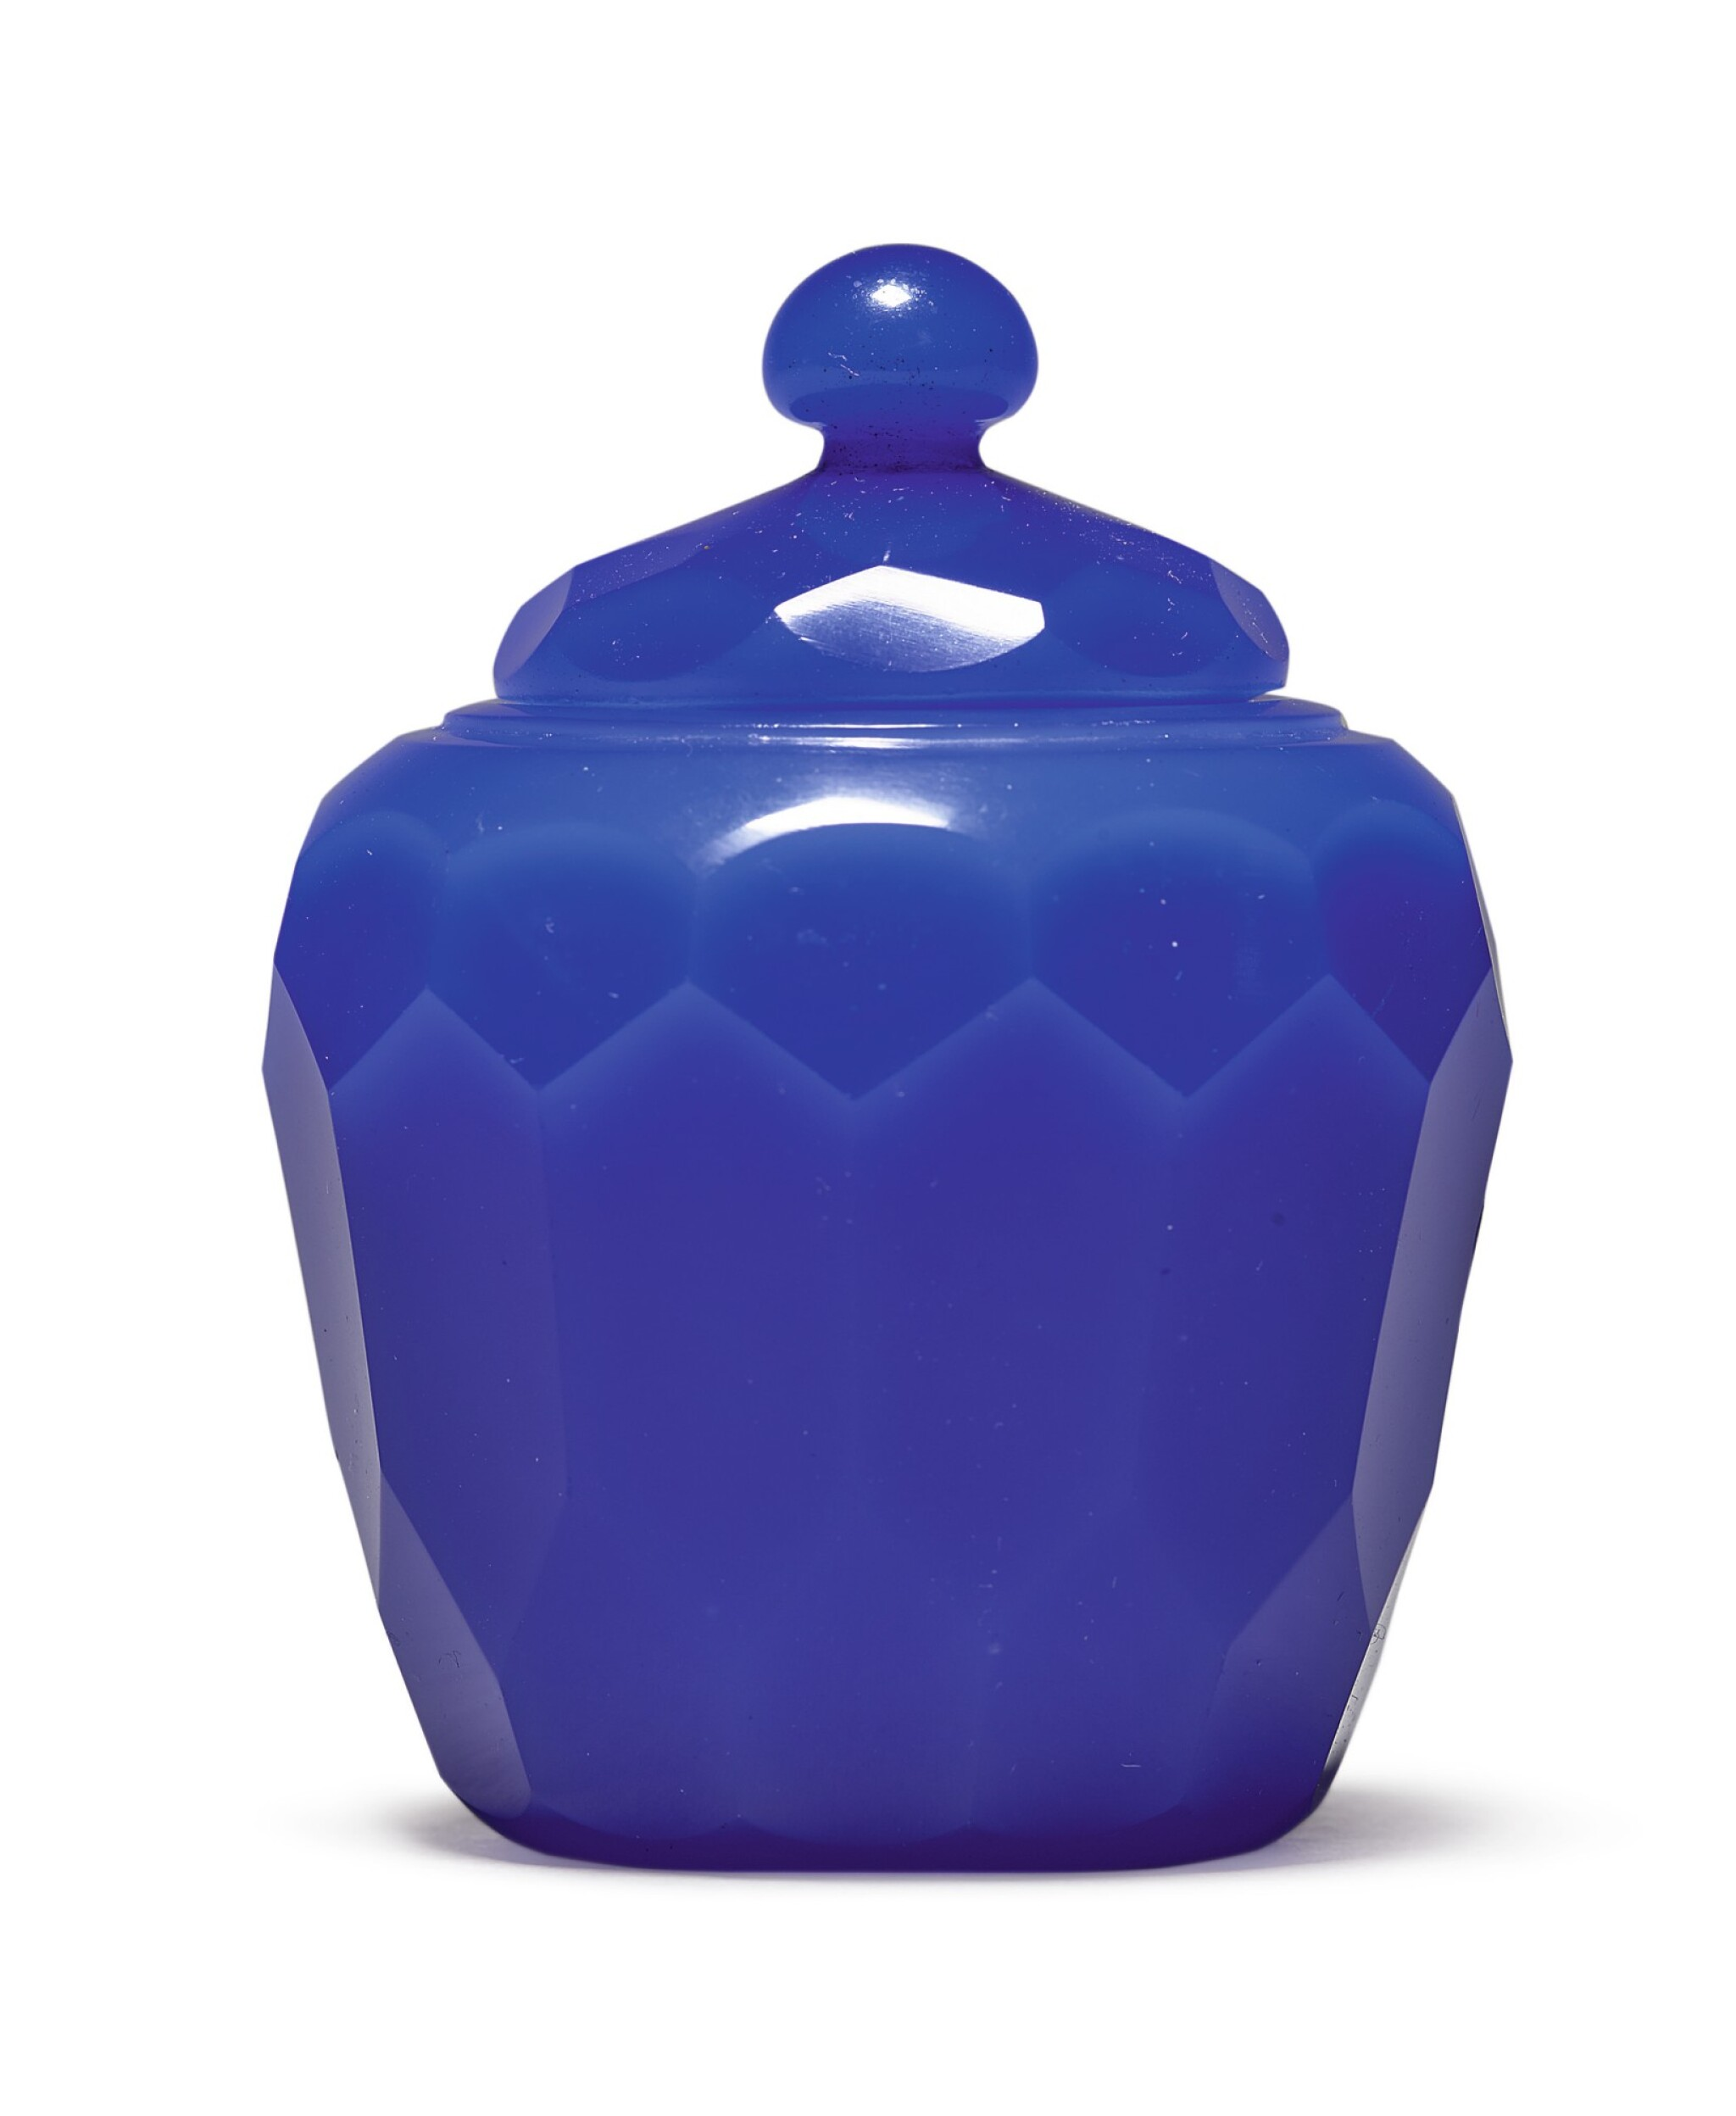 View 1 of Lot 1011. A FACETED ROYAL-BLUE GLASS JAR AND COVER, QING DYNASTY, 18TH CENTURY.